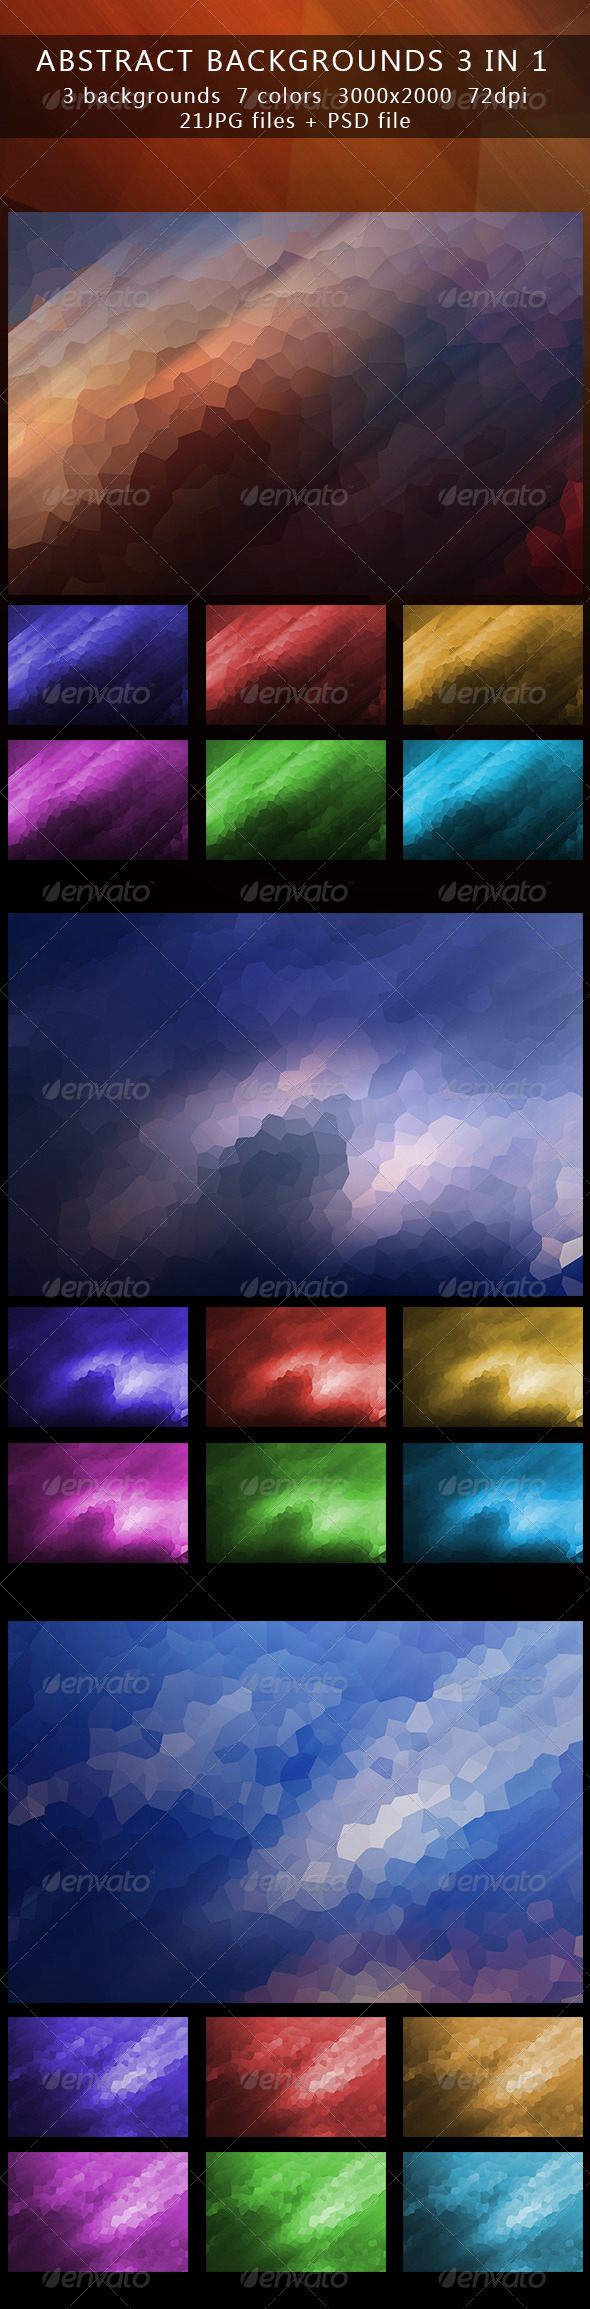 Abstract backgrounds part 2 3in1 - Abstract Backgrounds